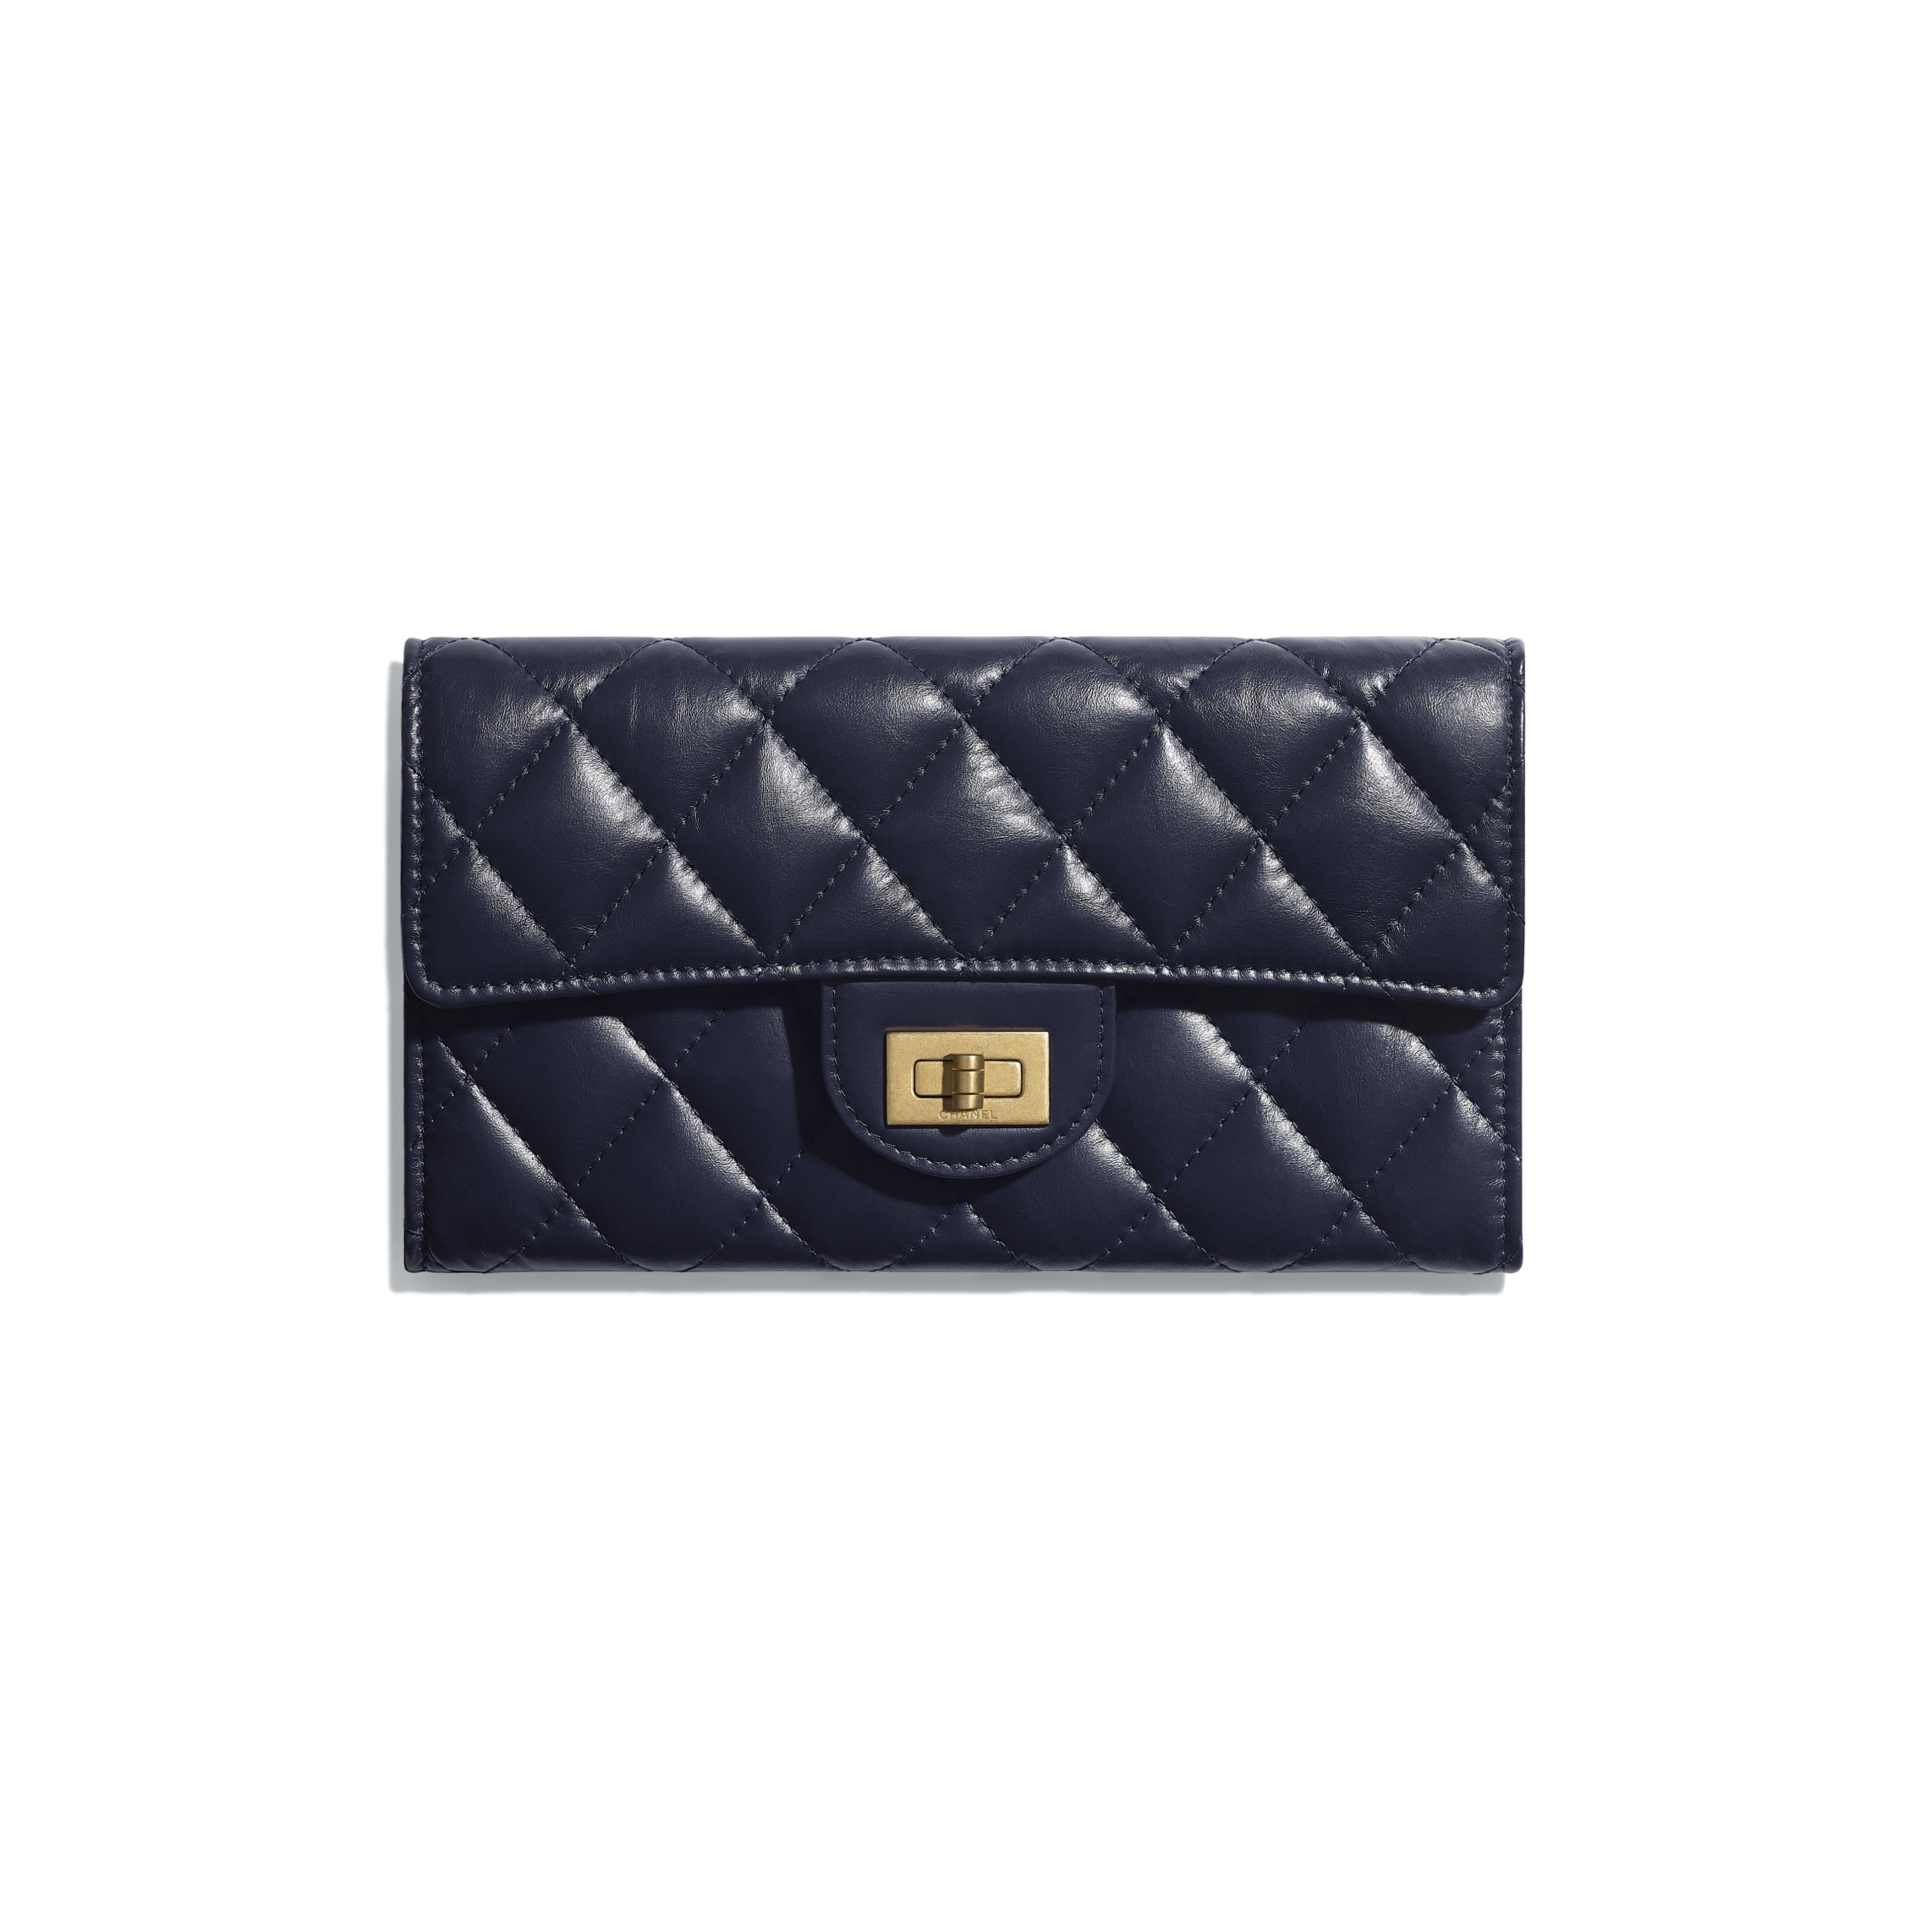 52588143844a 2.55 Flap Wallet - Navy Blue - Aged Calfskin & Gold-Tone Metal - Default  view - see full sized version